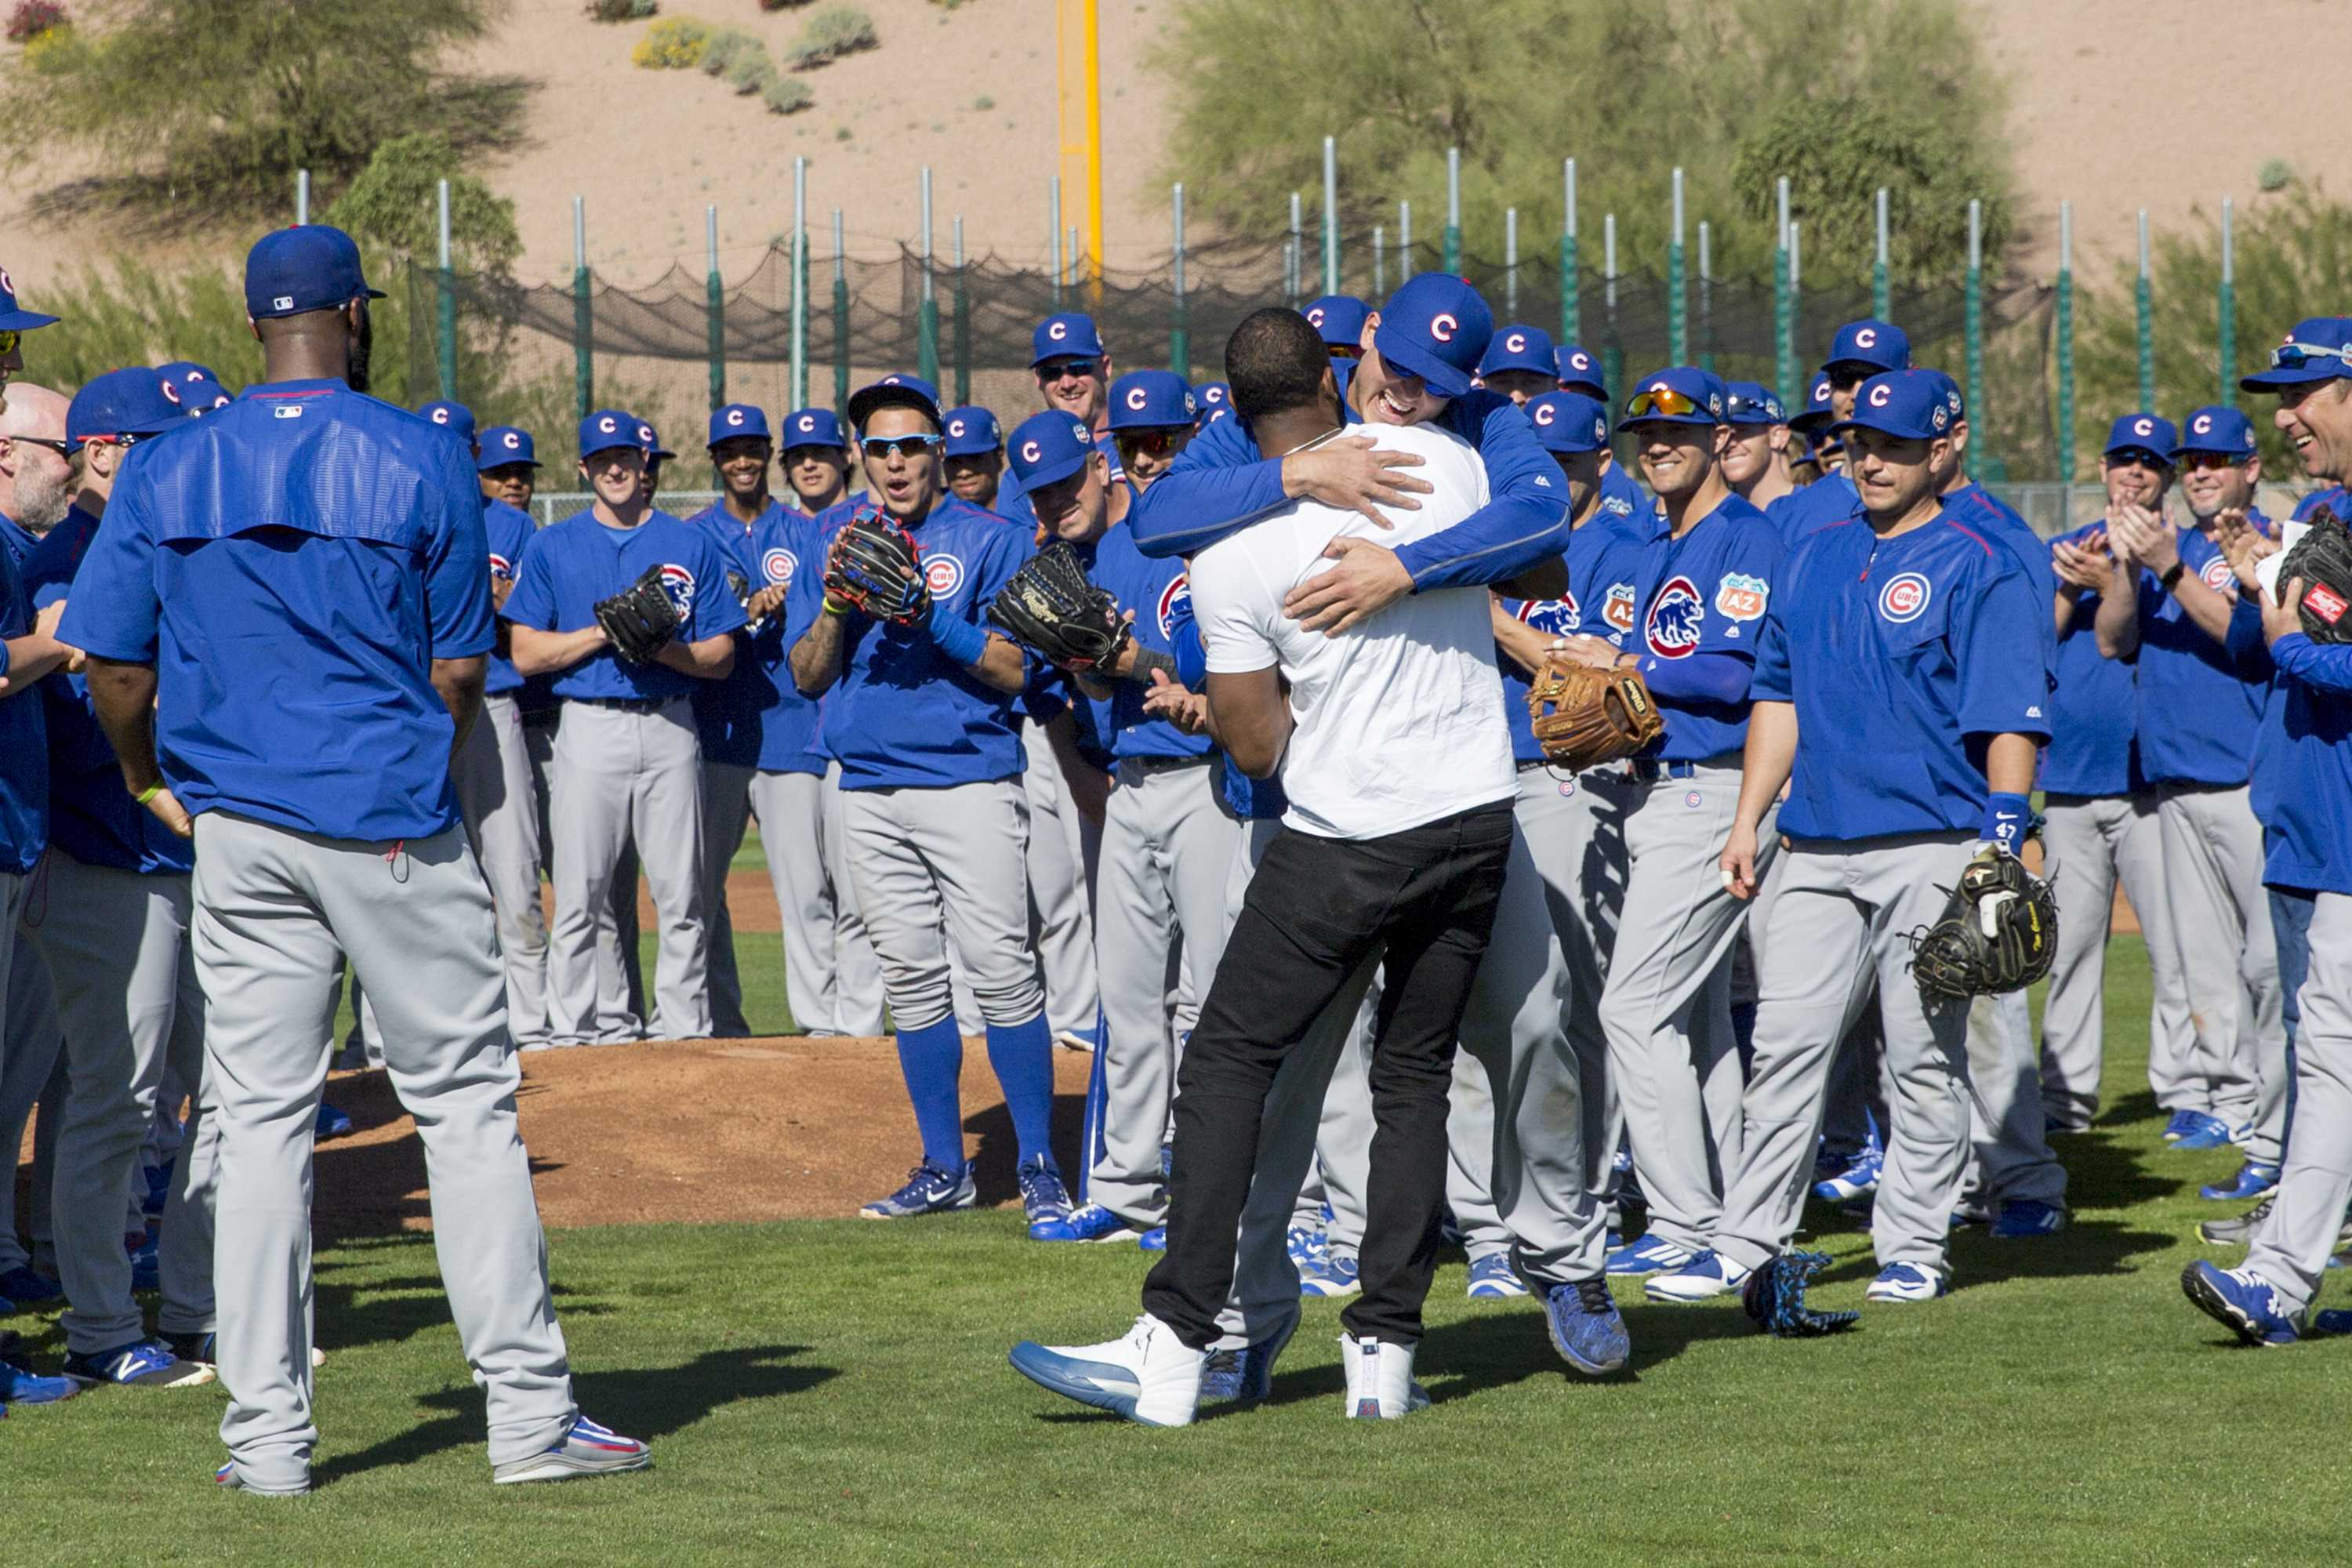 Chicago Cubs first baseman Anthony Rizzo hugs Dexter Fowler after Fowler made a surprise appearance during Cubs spring training at Sloan Park in Mesa, Ariz., on Thursday, Feb. 25, 2016. Fowler has agreed to a one-year contract with a mutual option with the Cubs. (Armando L. Sanchez/Chicago Tribune/TNS)